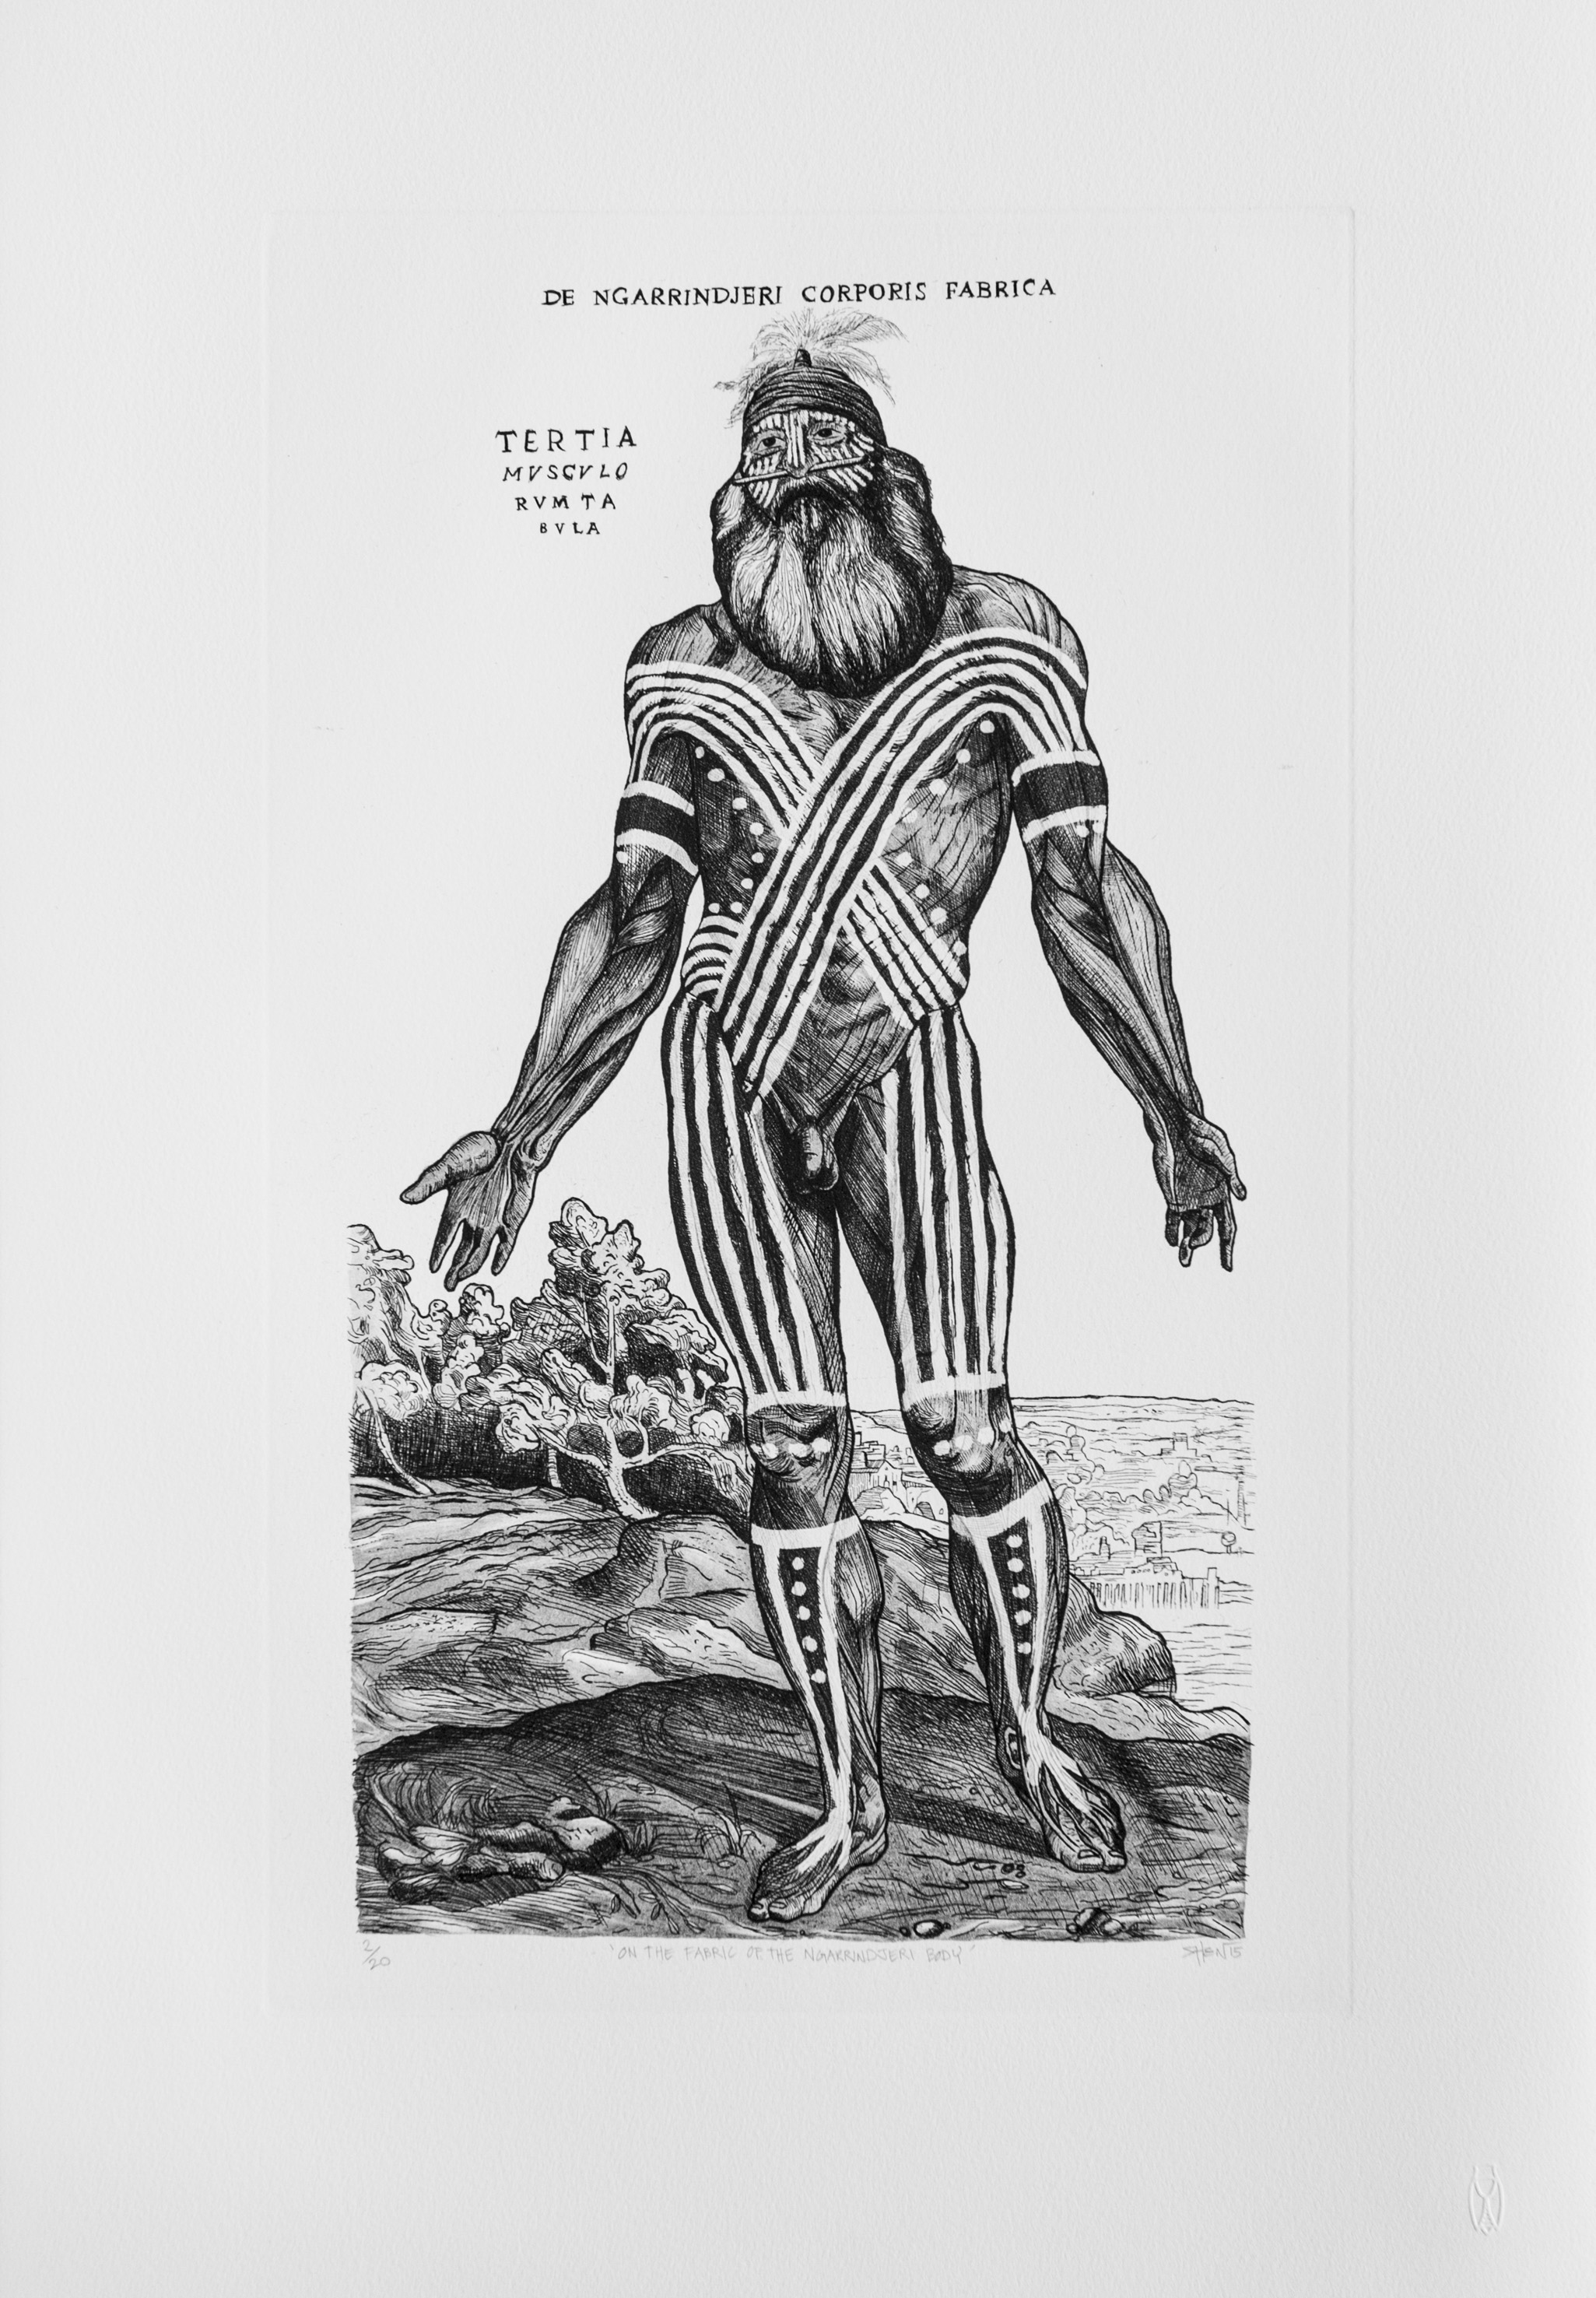 'On the fabric of the Ngarrindjeri Body', 2014 <br>Etching, 65 x 46 cm, Edition of 20